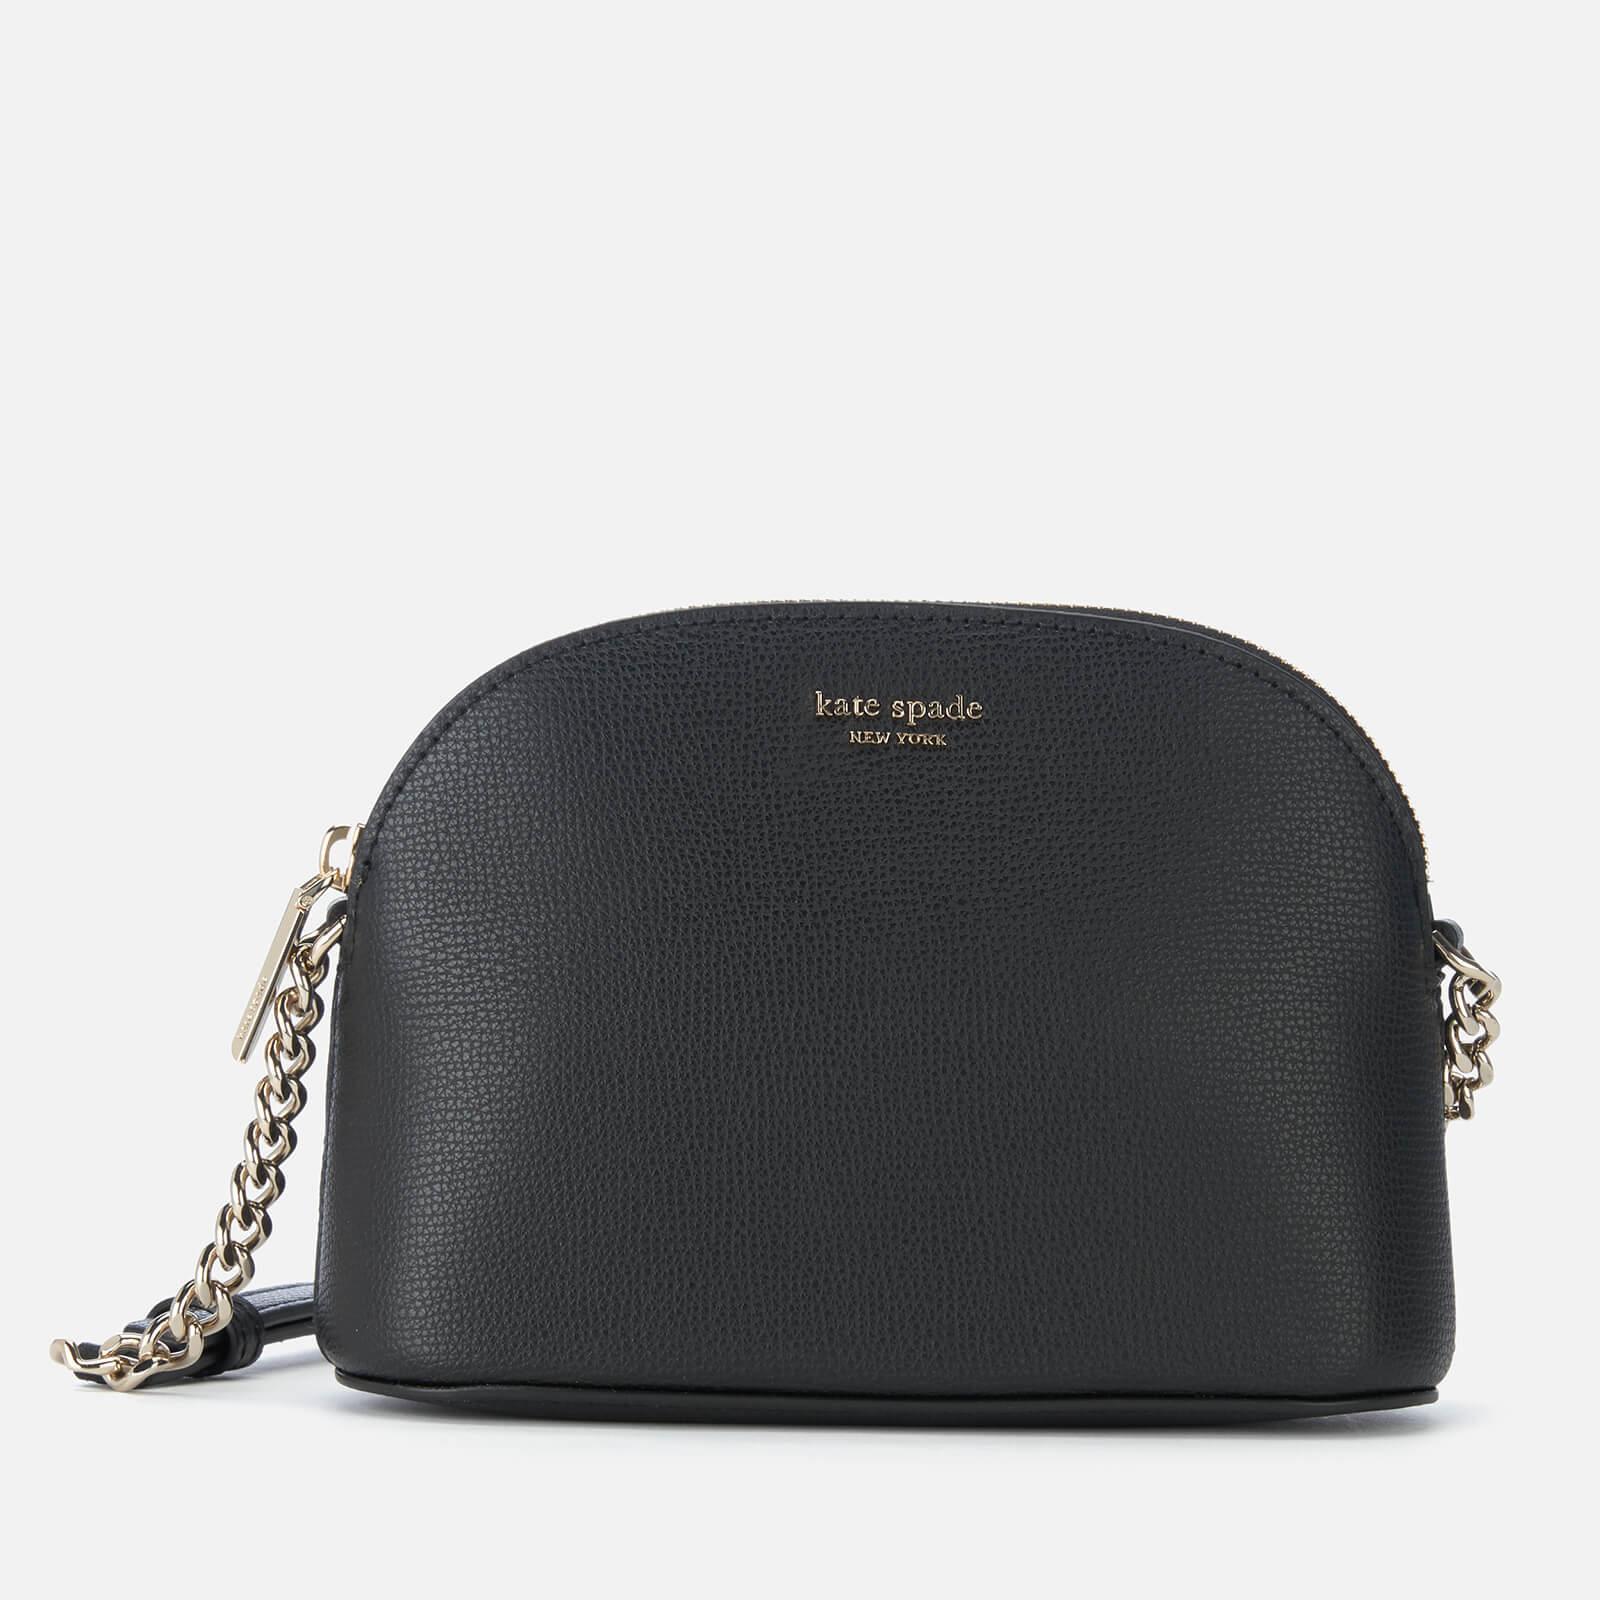 a4522961ebd Kate Spade New York Women's Sylvia Small Dome Cross Body Bag - Black